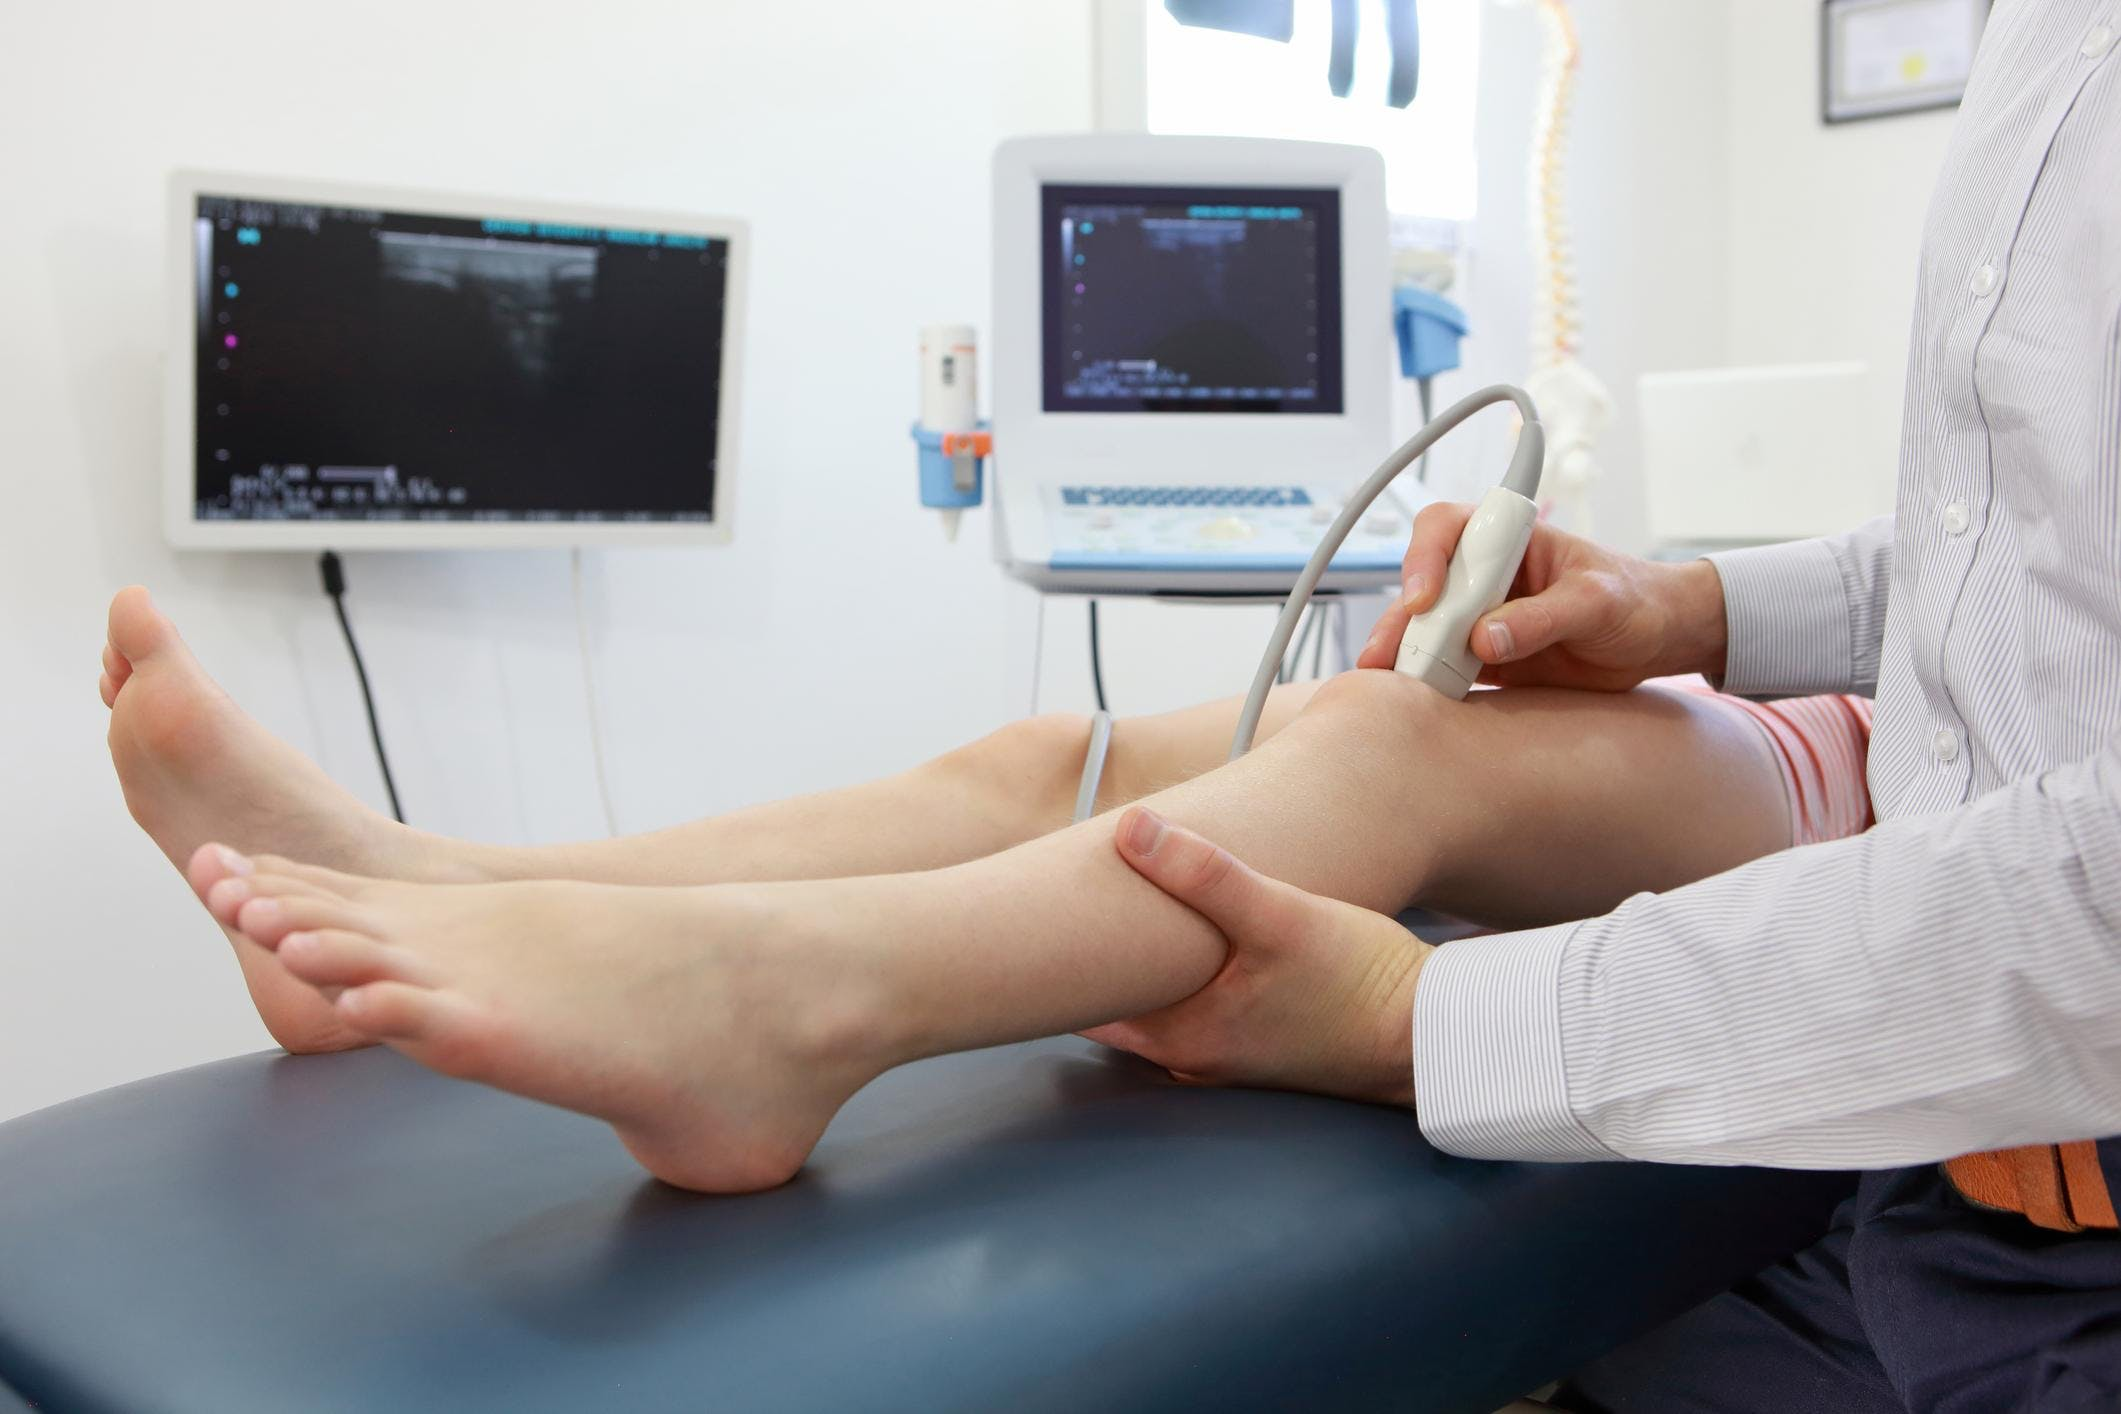 Introduction to Diagnostic Ultrasound in Musculoskeletal and Sports Medicine